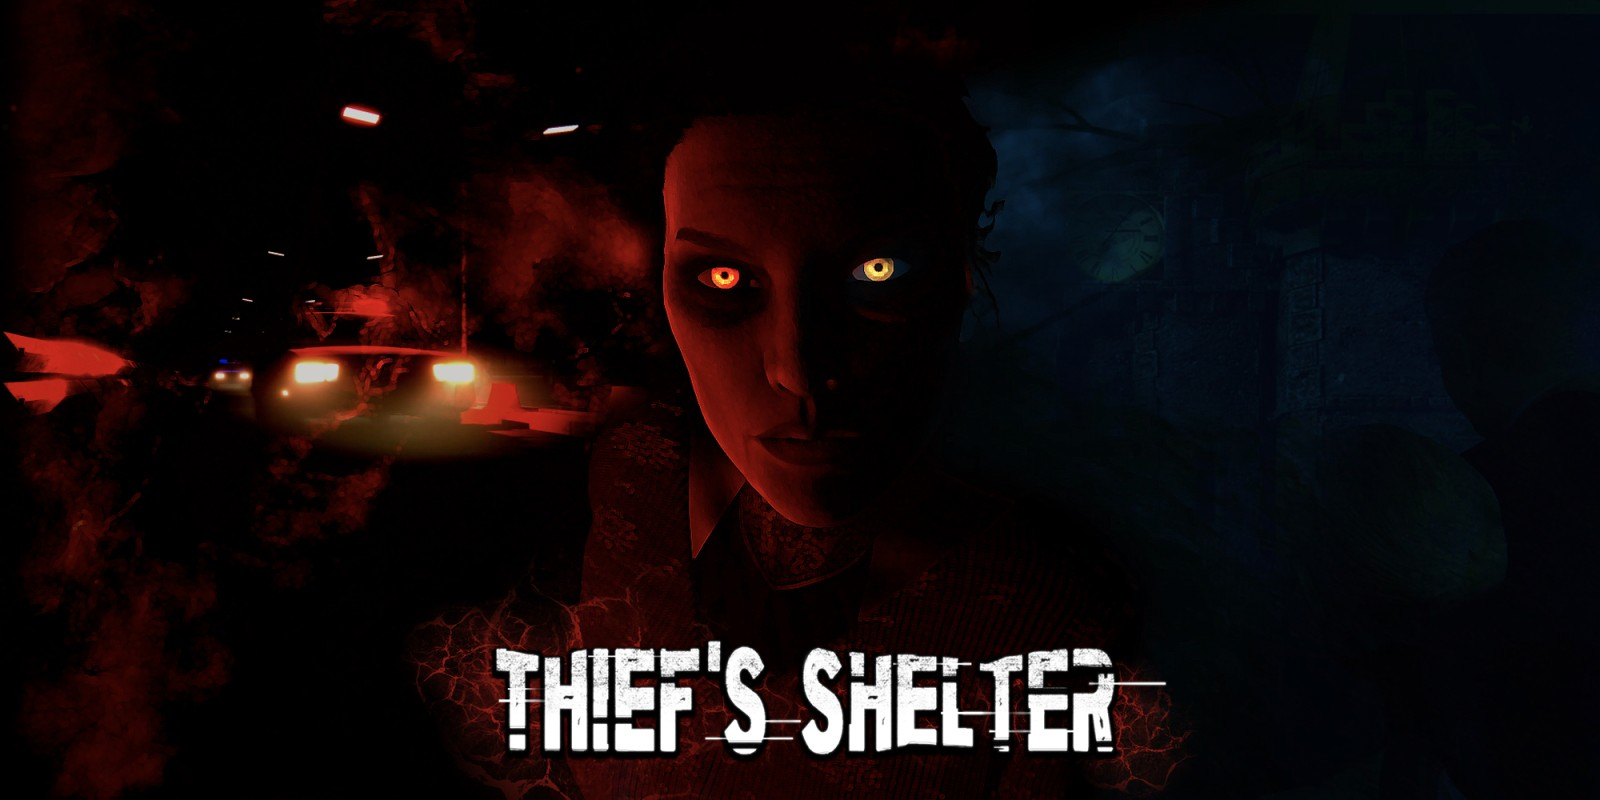 Thief's Shelter